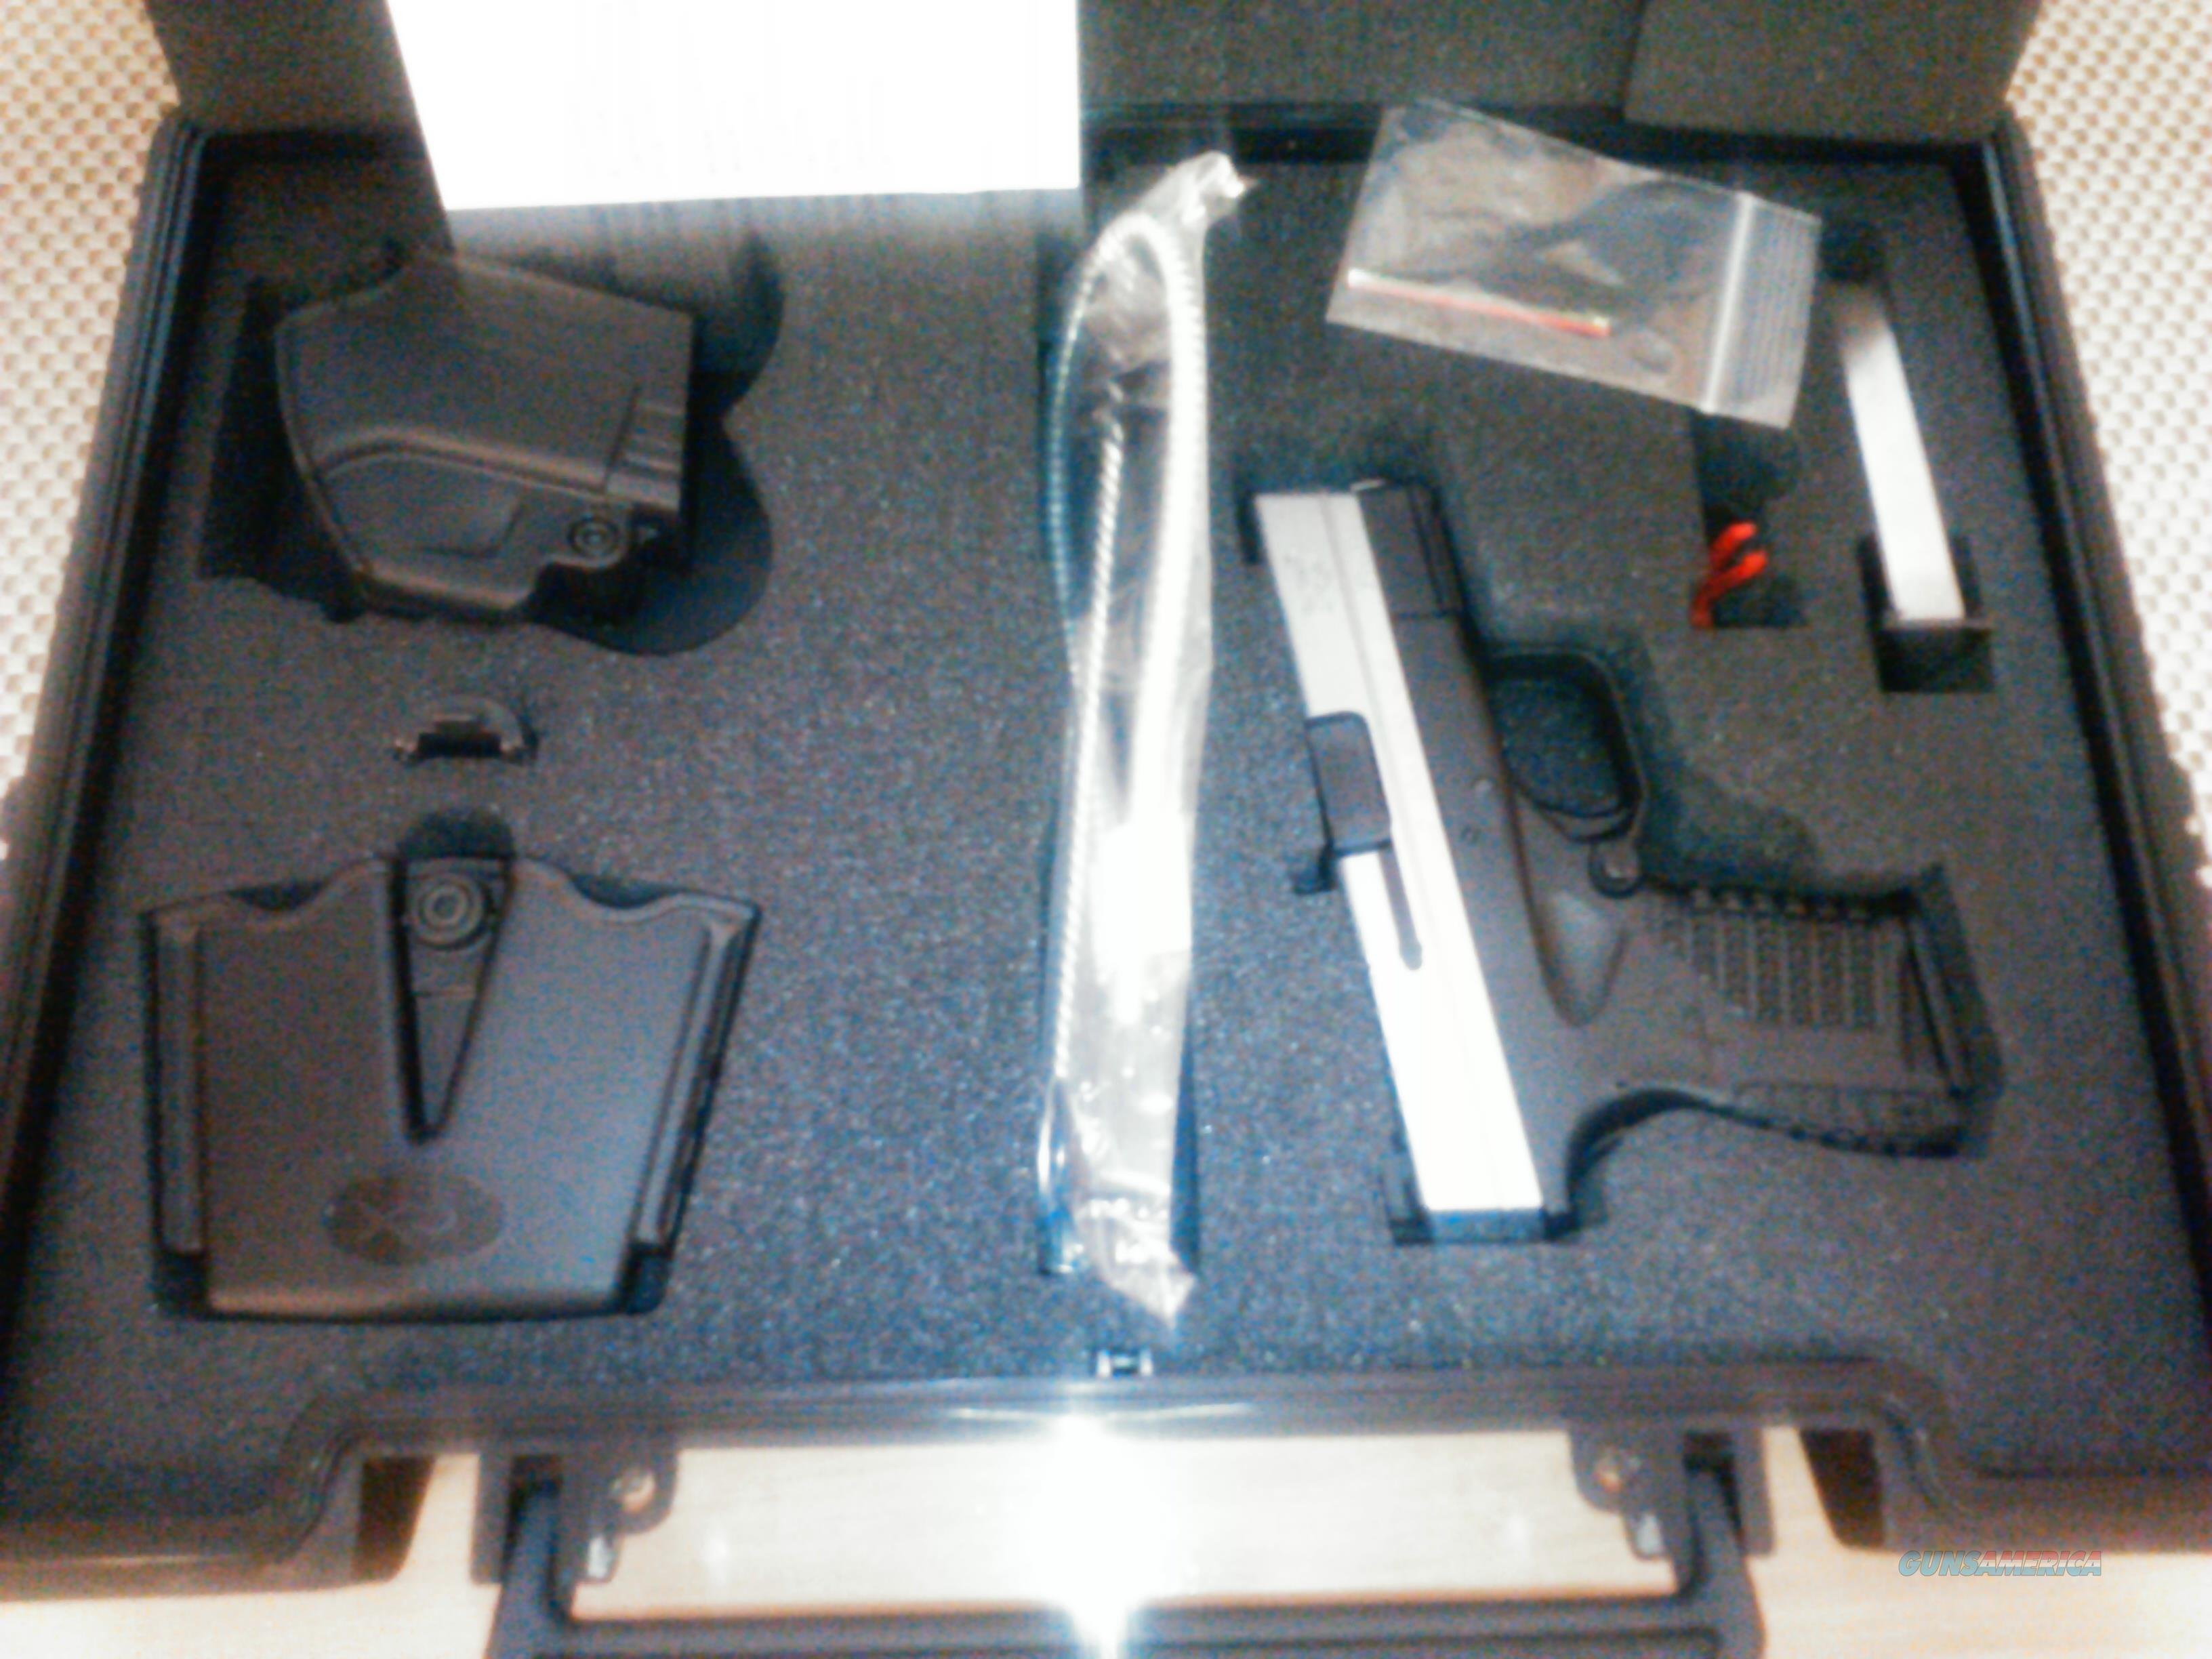 "SPRINGFIELD ARMORY XDS-9 9MM  3.3""BL  2-7RD MAGS AND EXTRAS, FREE SHIPPING NO CC FEE  Guns > Pistols > Springfield Armory Pistols > XD-S"